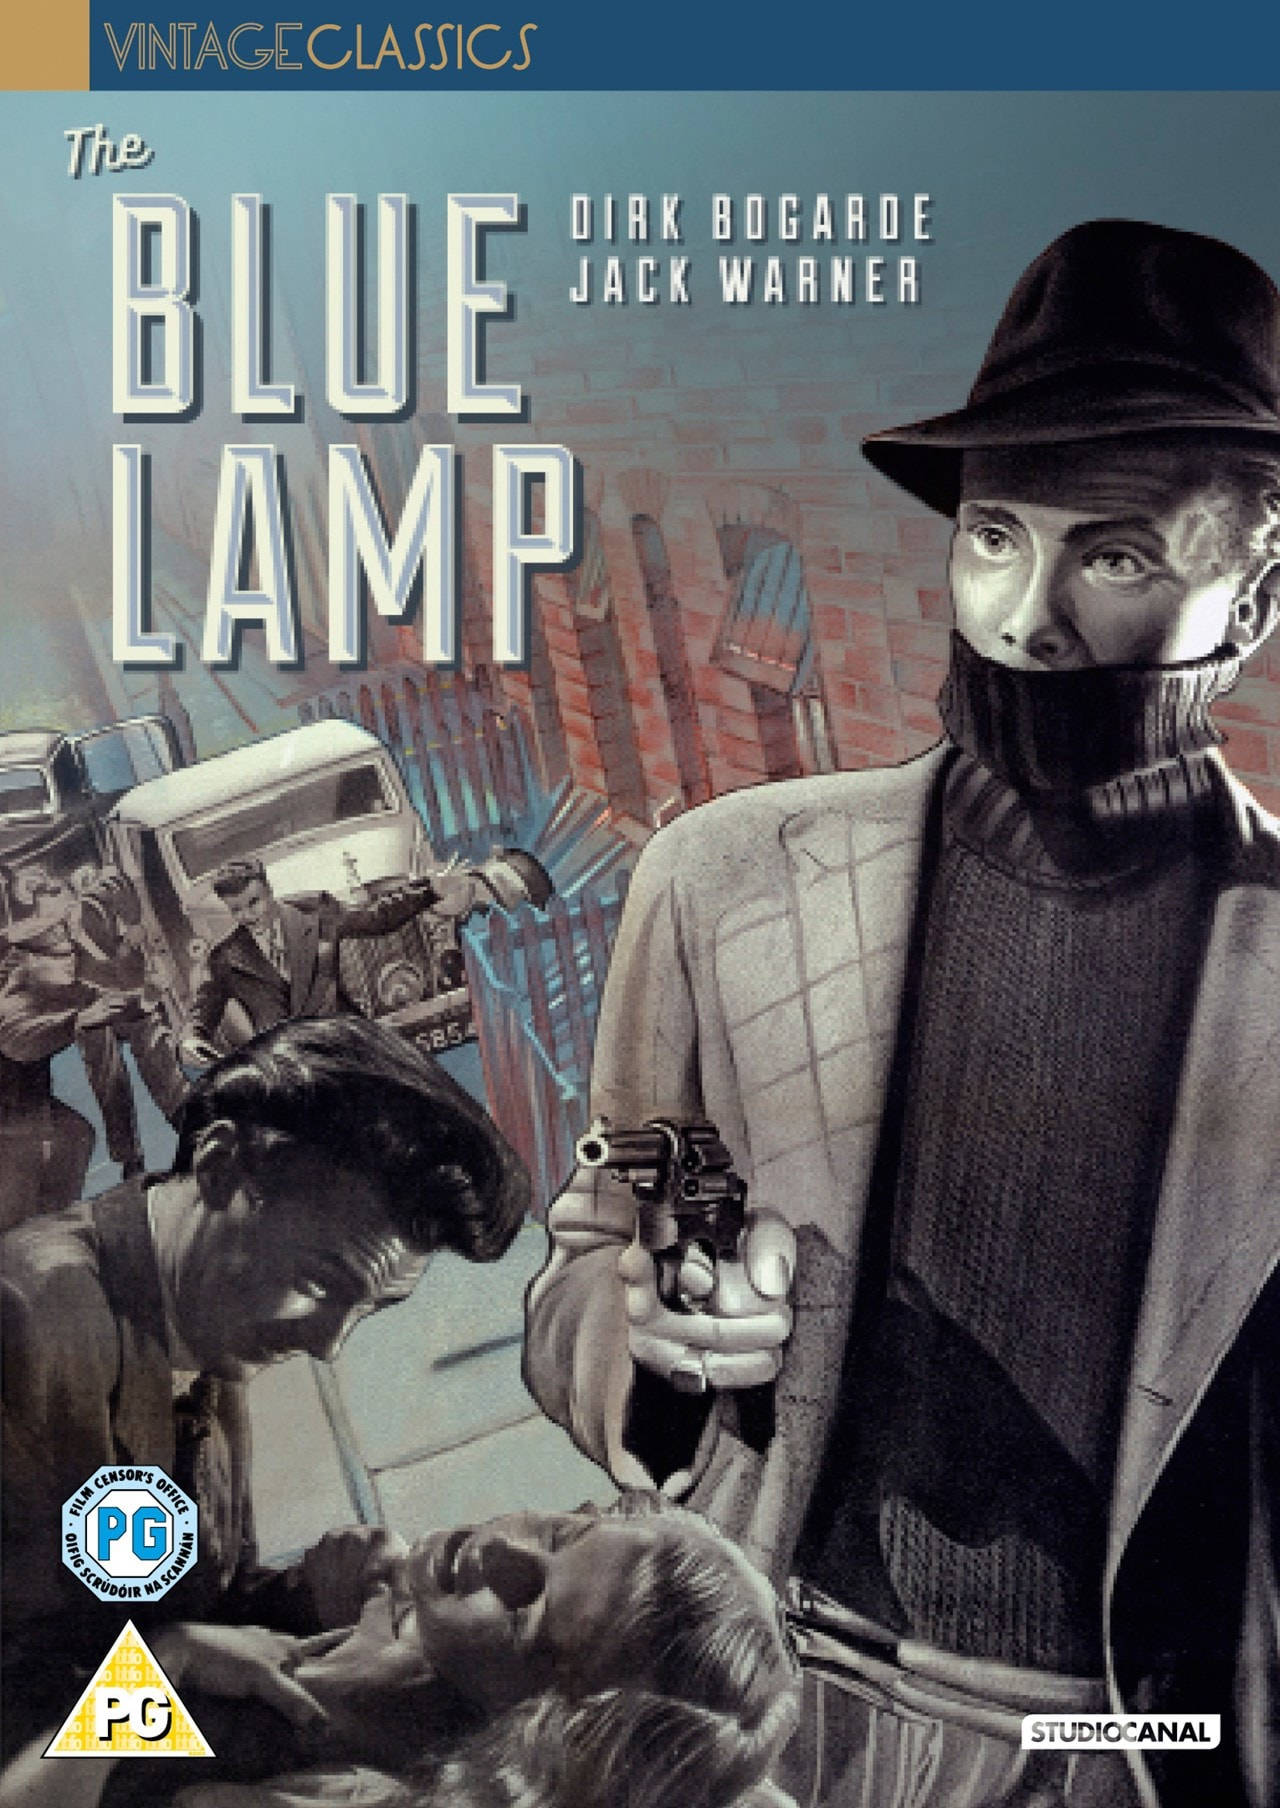 The Blue Lamp - 1